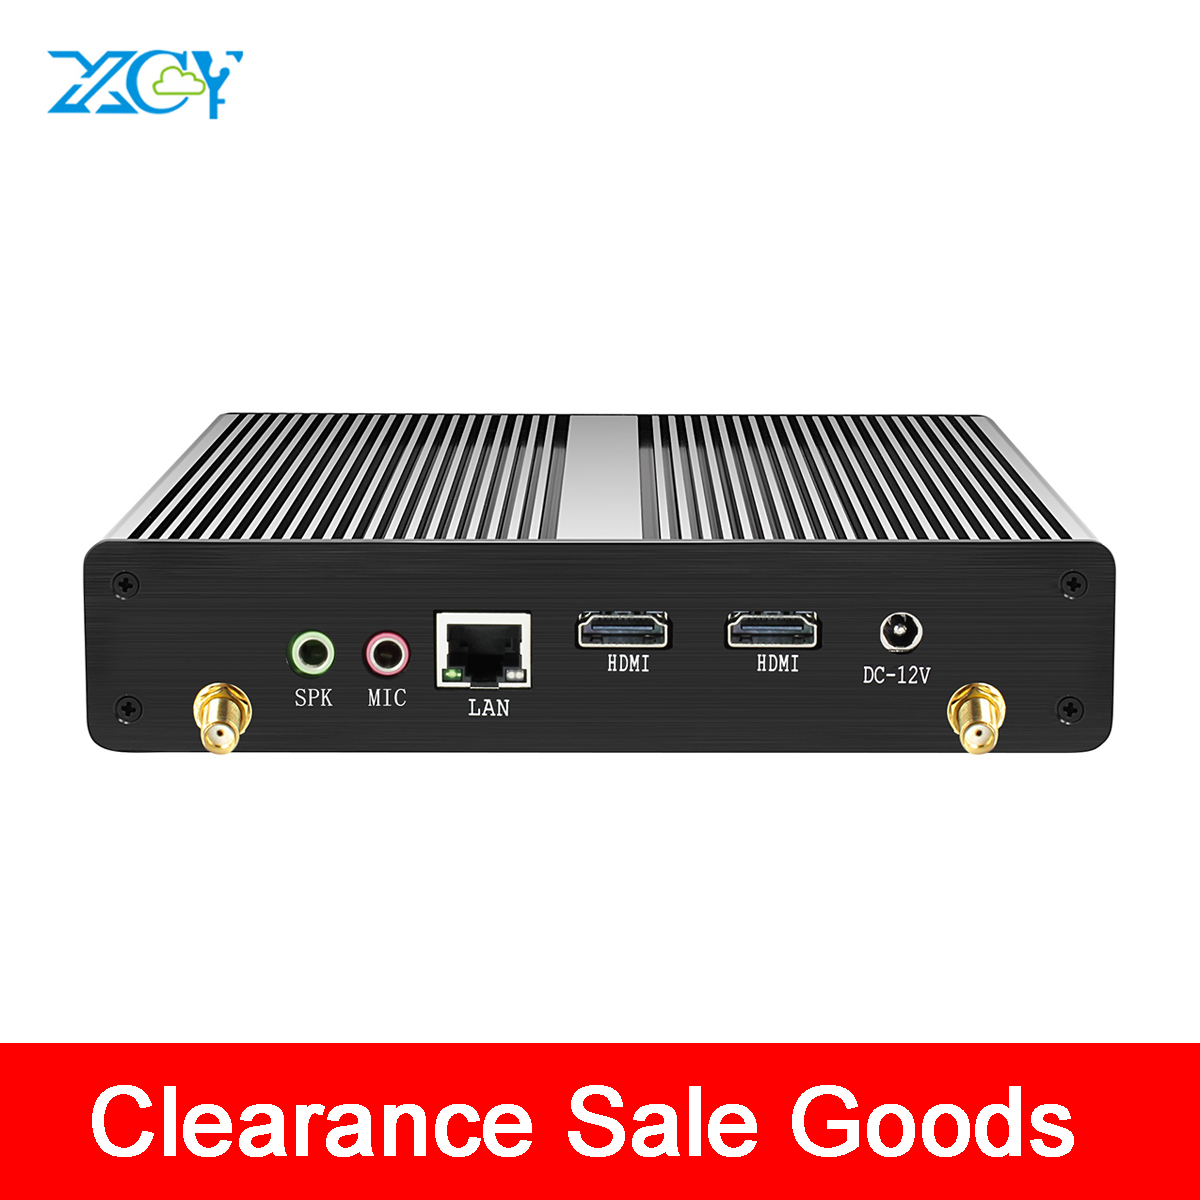 Clearance Sale Mini PC Fanless Intel Celeron N2807 2*HDMI Windows 7 Wifi 6*USB TV BOX HTPC NUC Computer